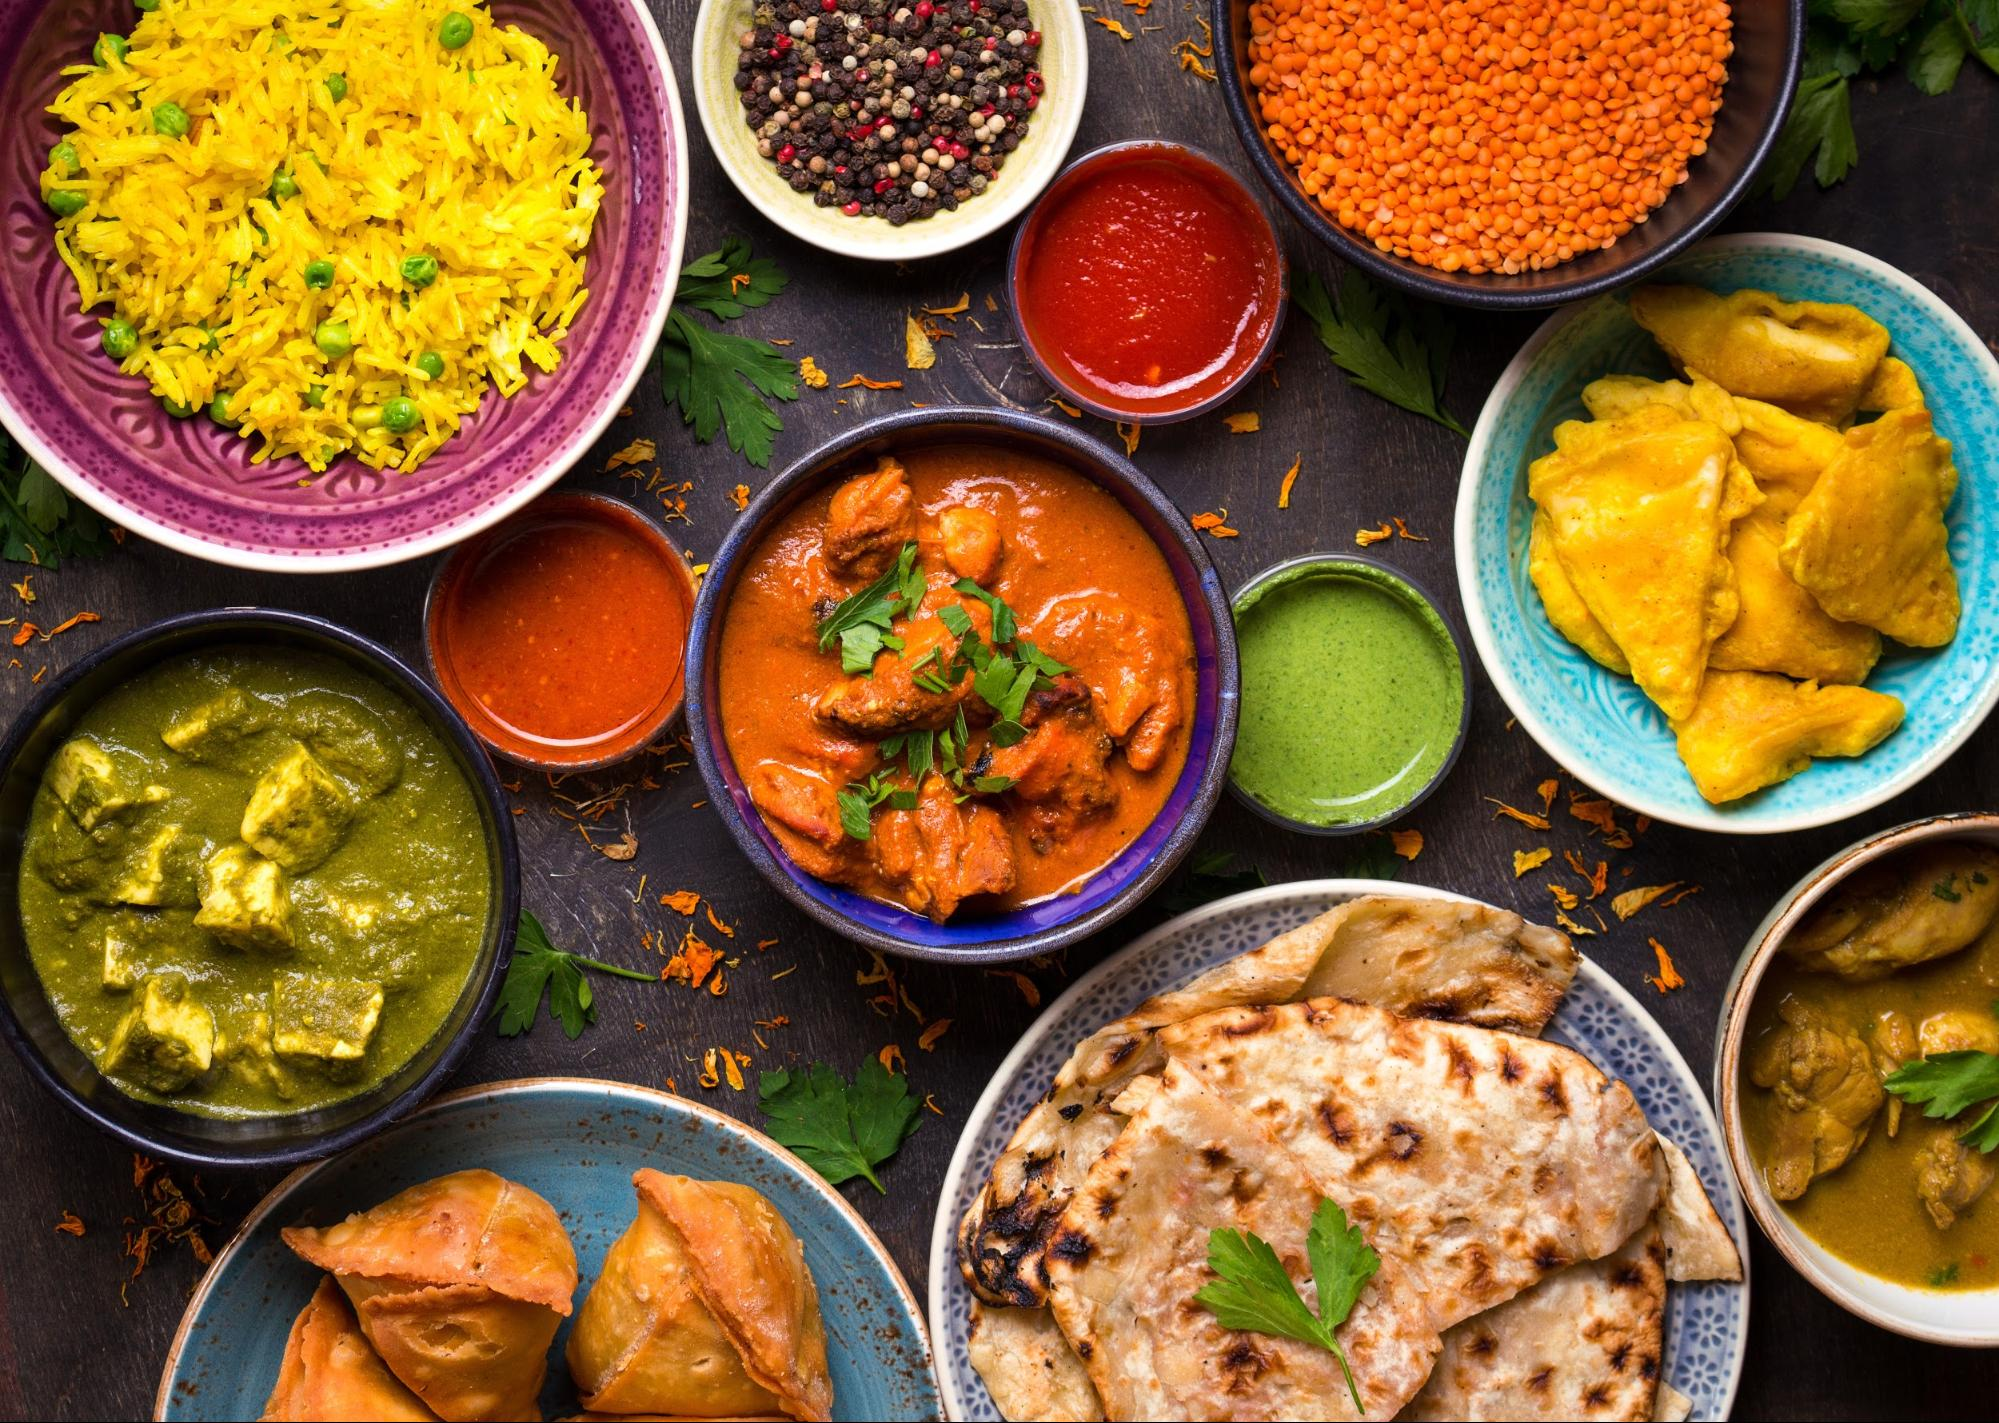 A Comprehensive Guide to Indian Cuisine: List of Popular Indian Dishes by  Region and Type - 2020 - MasterClass